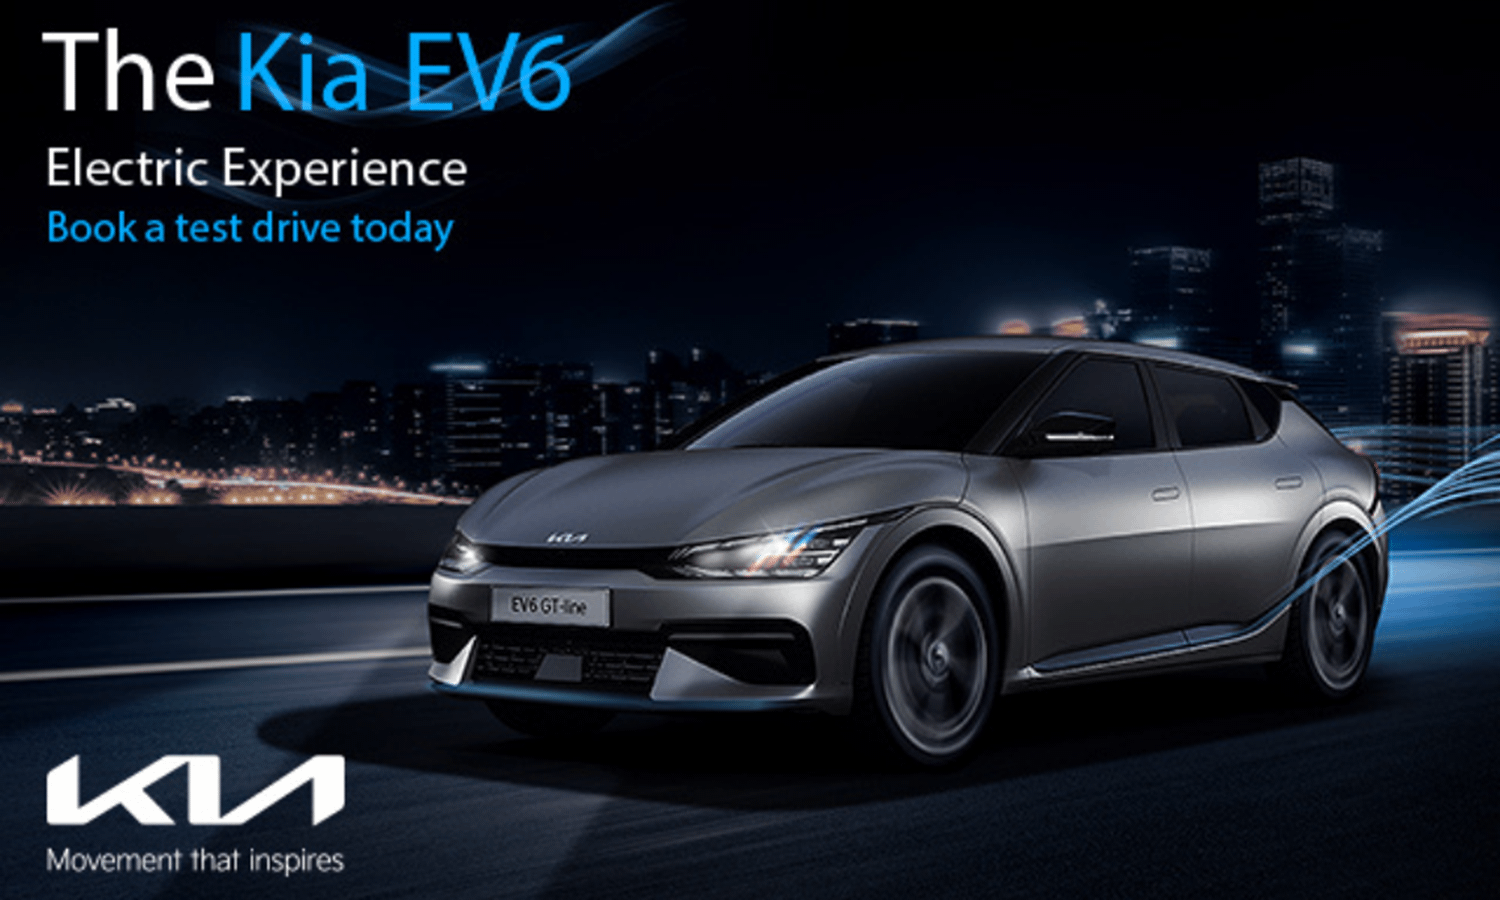 The Kia EV6 with test drive and offer